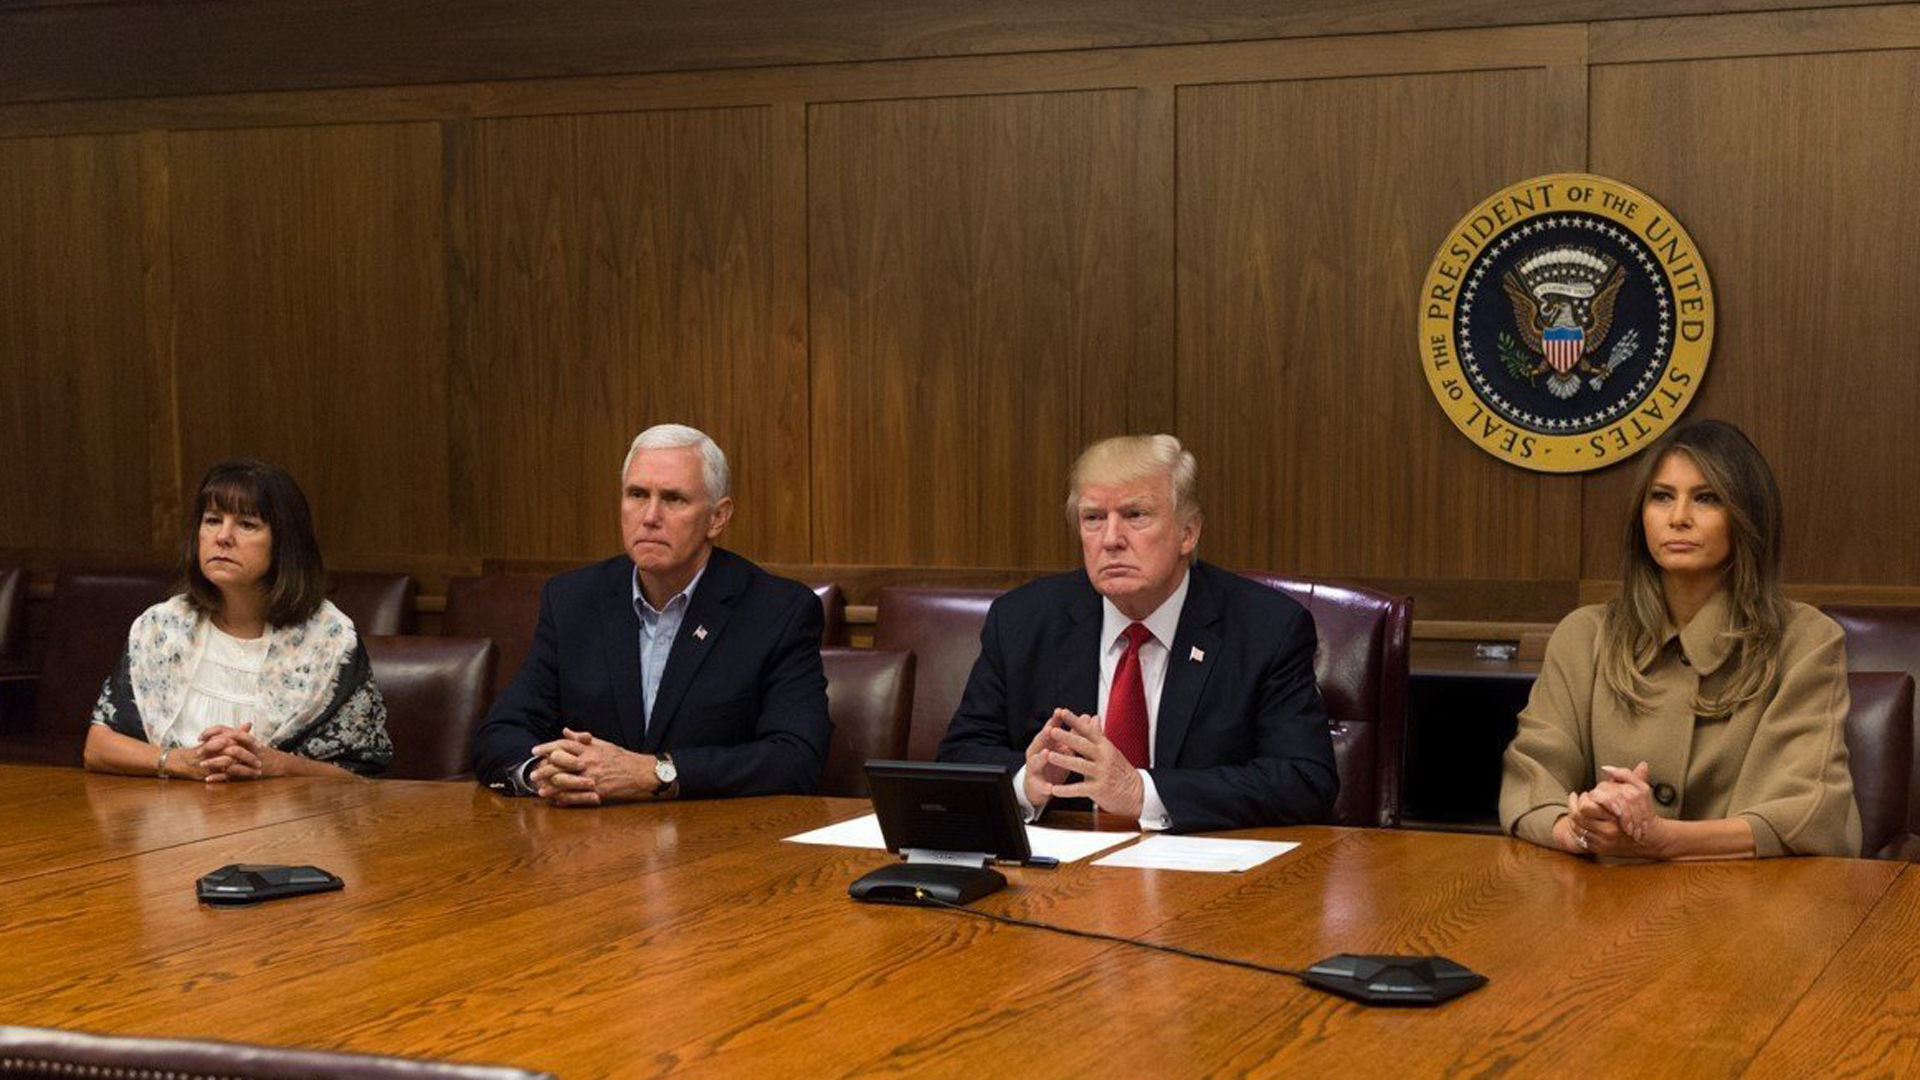 The Trumps and the Pences take part in a video teleconference with FEMA to discuss Hurricane Irma. (Credit: CNN)